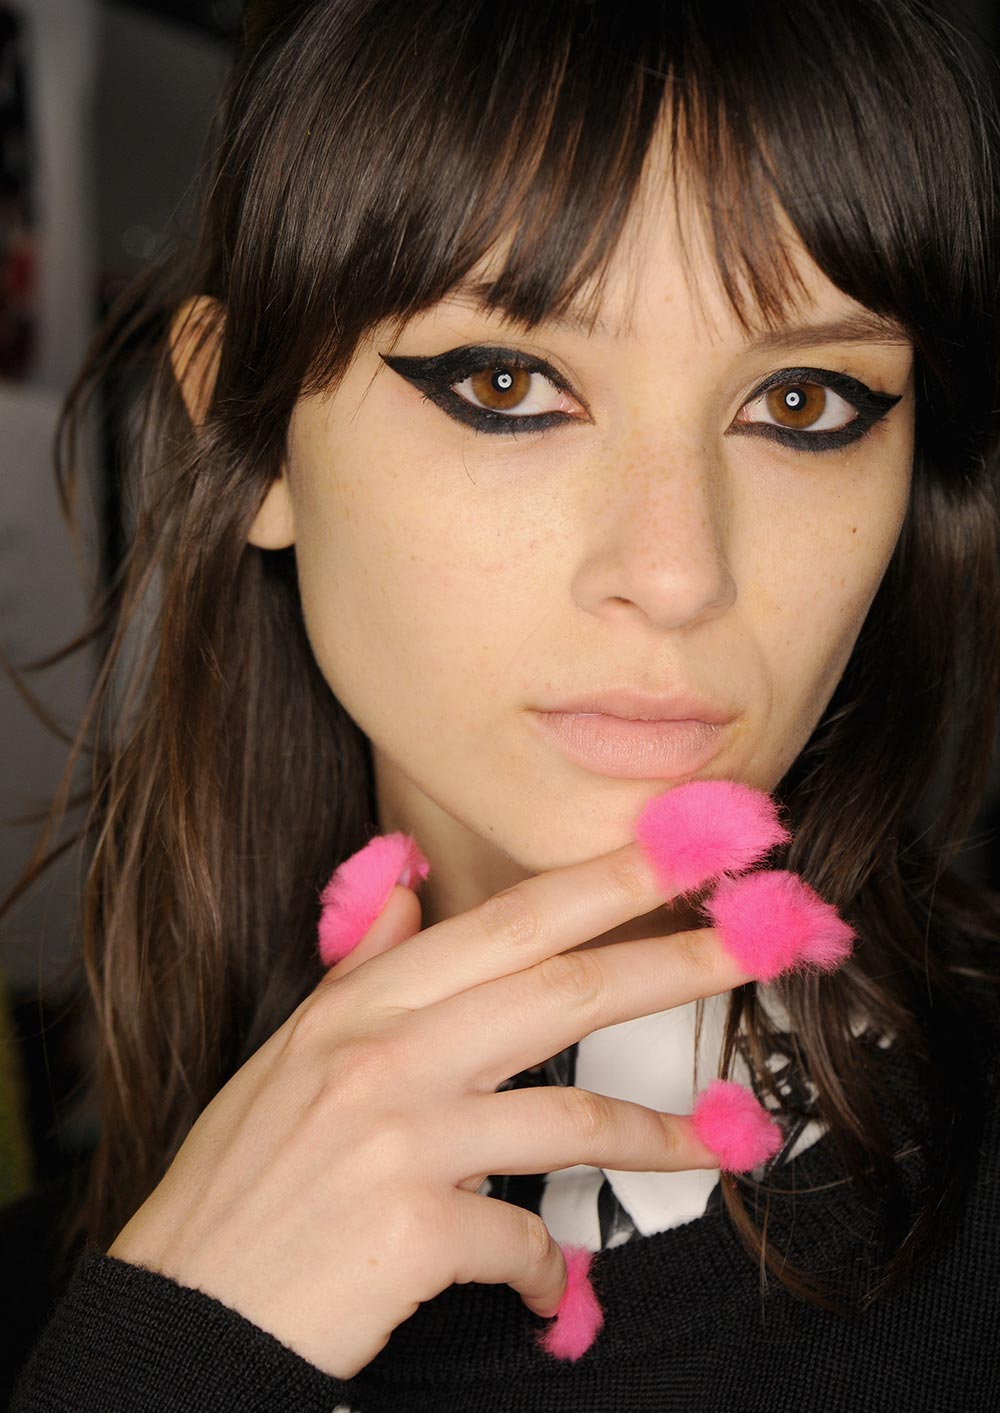 fuzzy-pink-nails-libertine-spring-2017